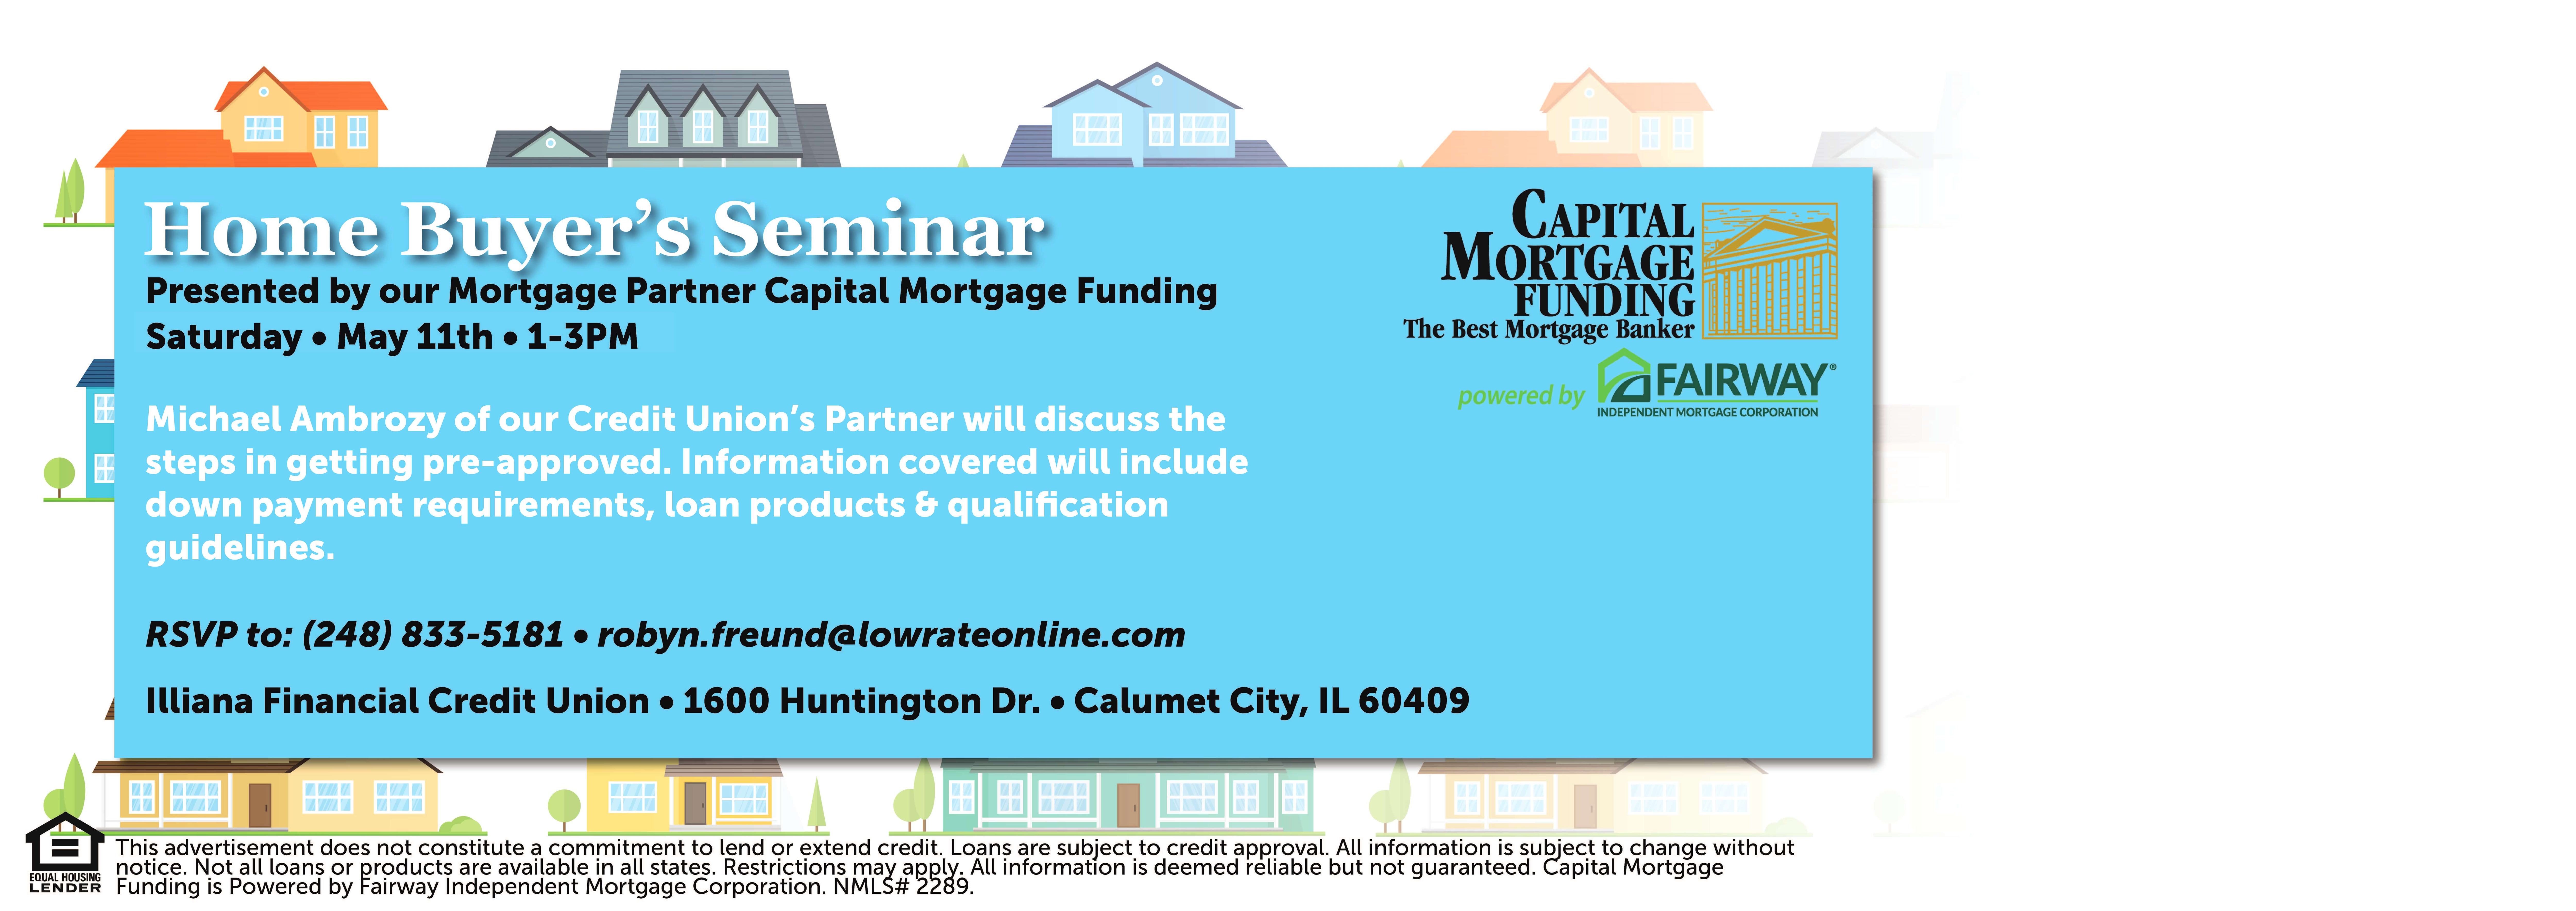 Home Buyer's Seminar: Capital Mortgage Fundign